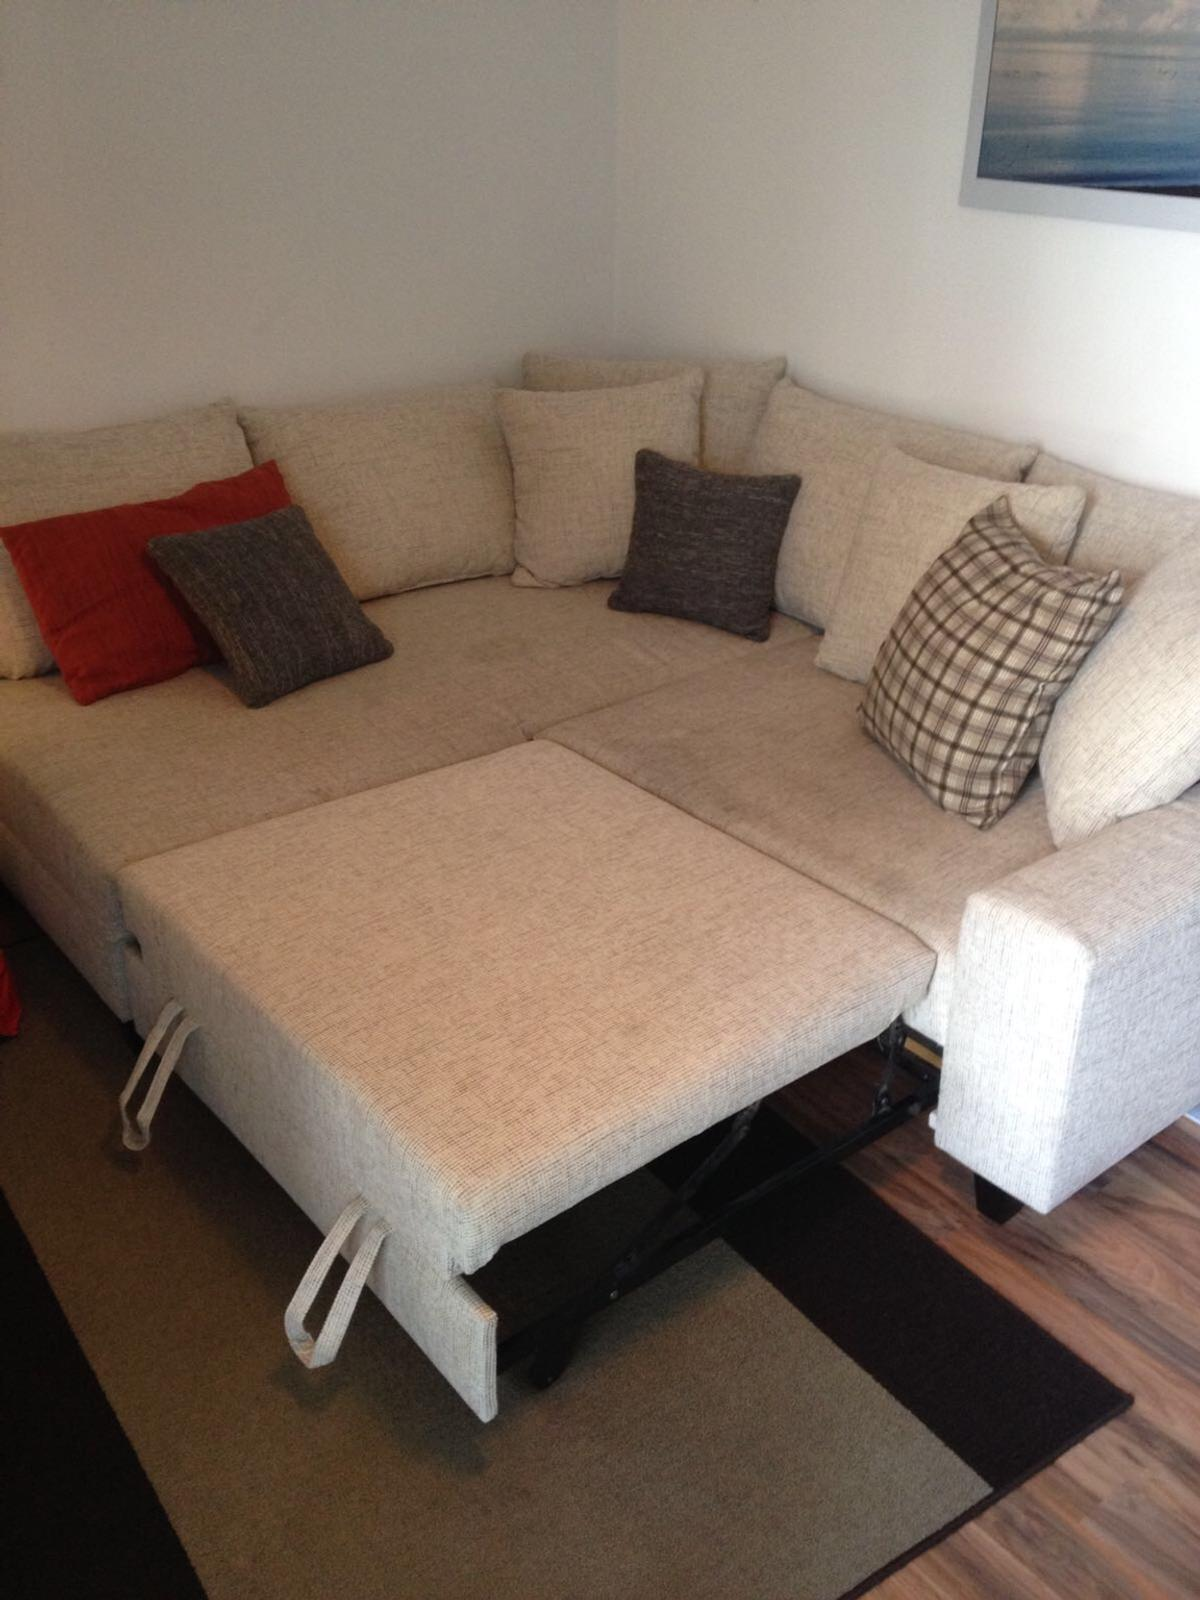 Eckcouch Couch Schlafsofa Sofa Schlafcouch In 20095 Hamburg For 200 00 For Sale Shpock